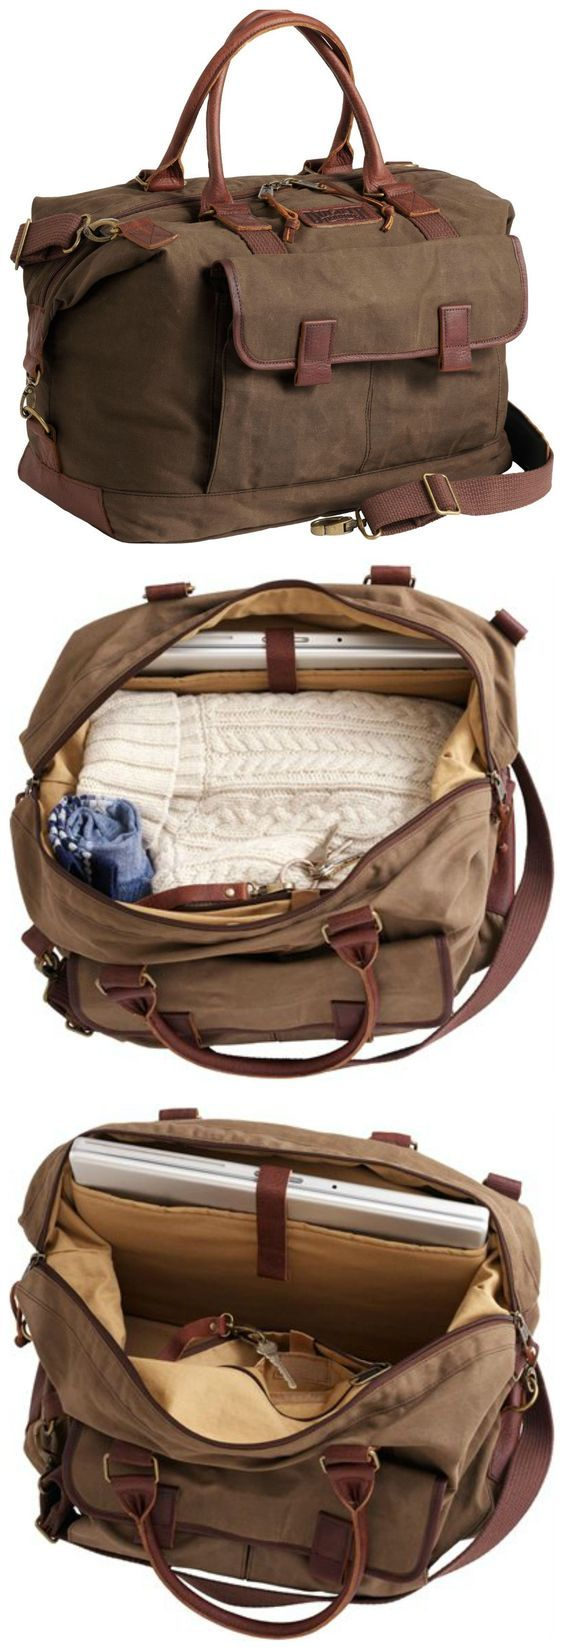 #1 ESCAPE Canvas bag Looking for a bag that's just perfect to keep your belongings for a weekend getaway? try out this amazing utility bag. Price : $99.00 — Available at : Forest…